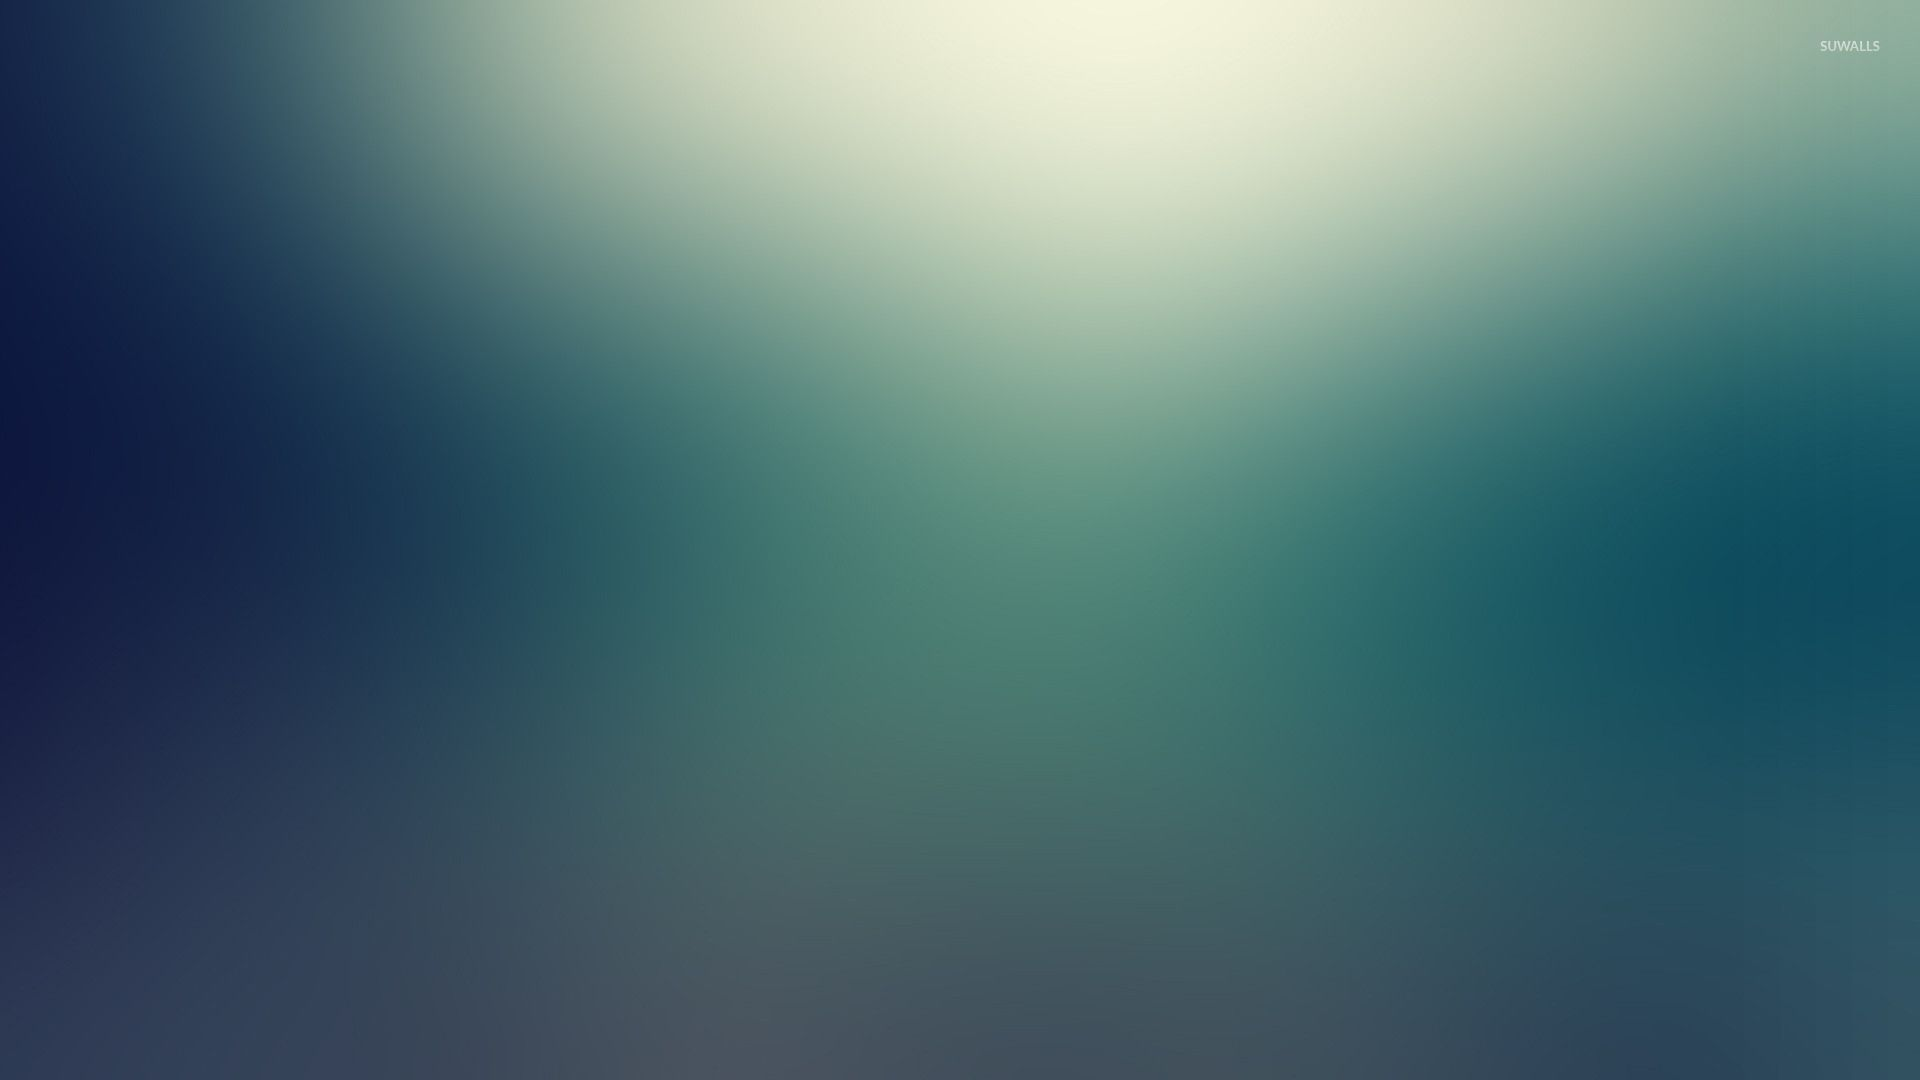 turquoise abstract computer wallpaper - photo #14